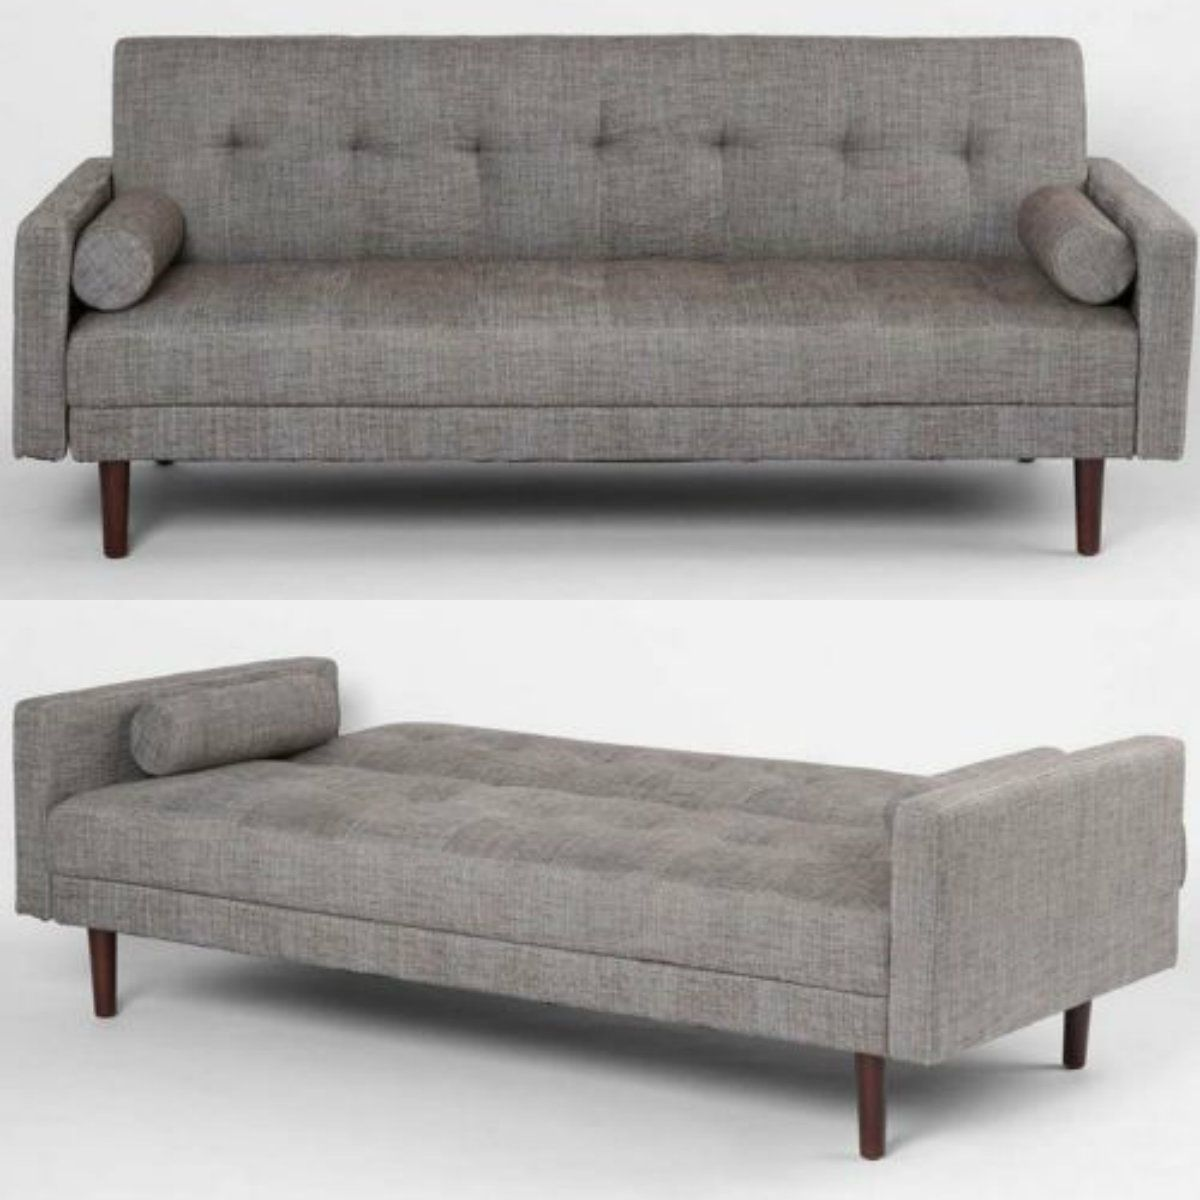 With This Mid Century Modern Convertible Sofa Bed You Ll Enjoy